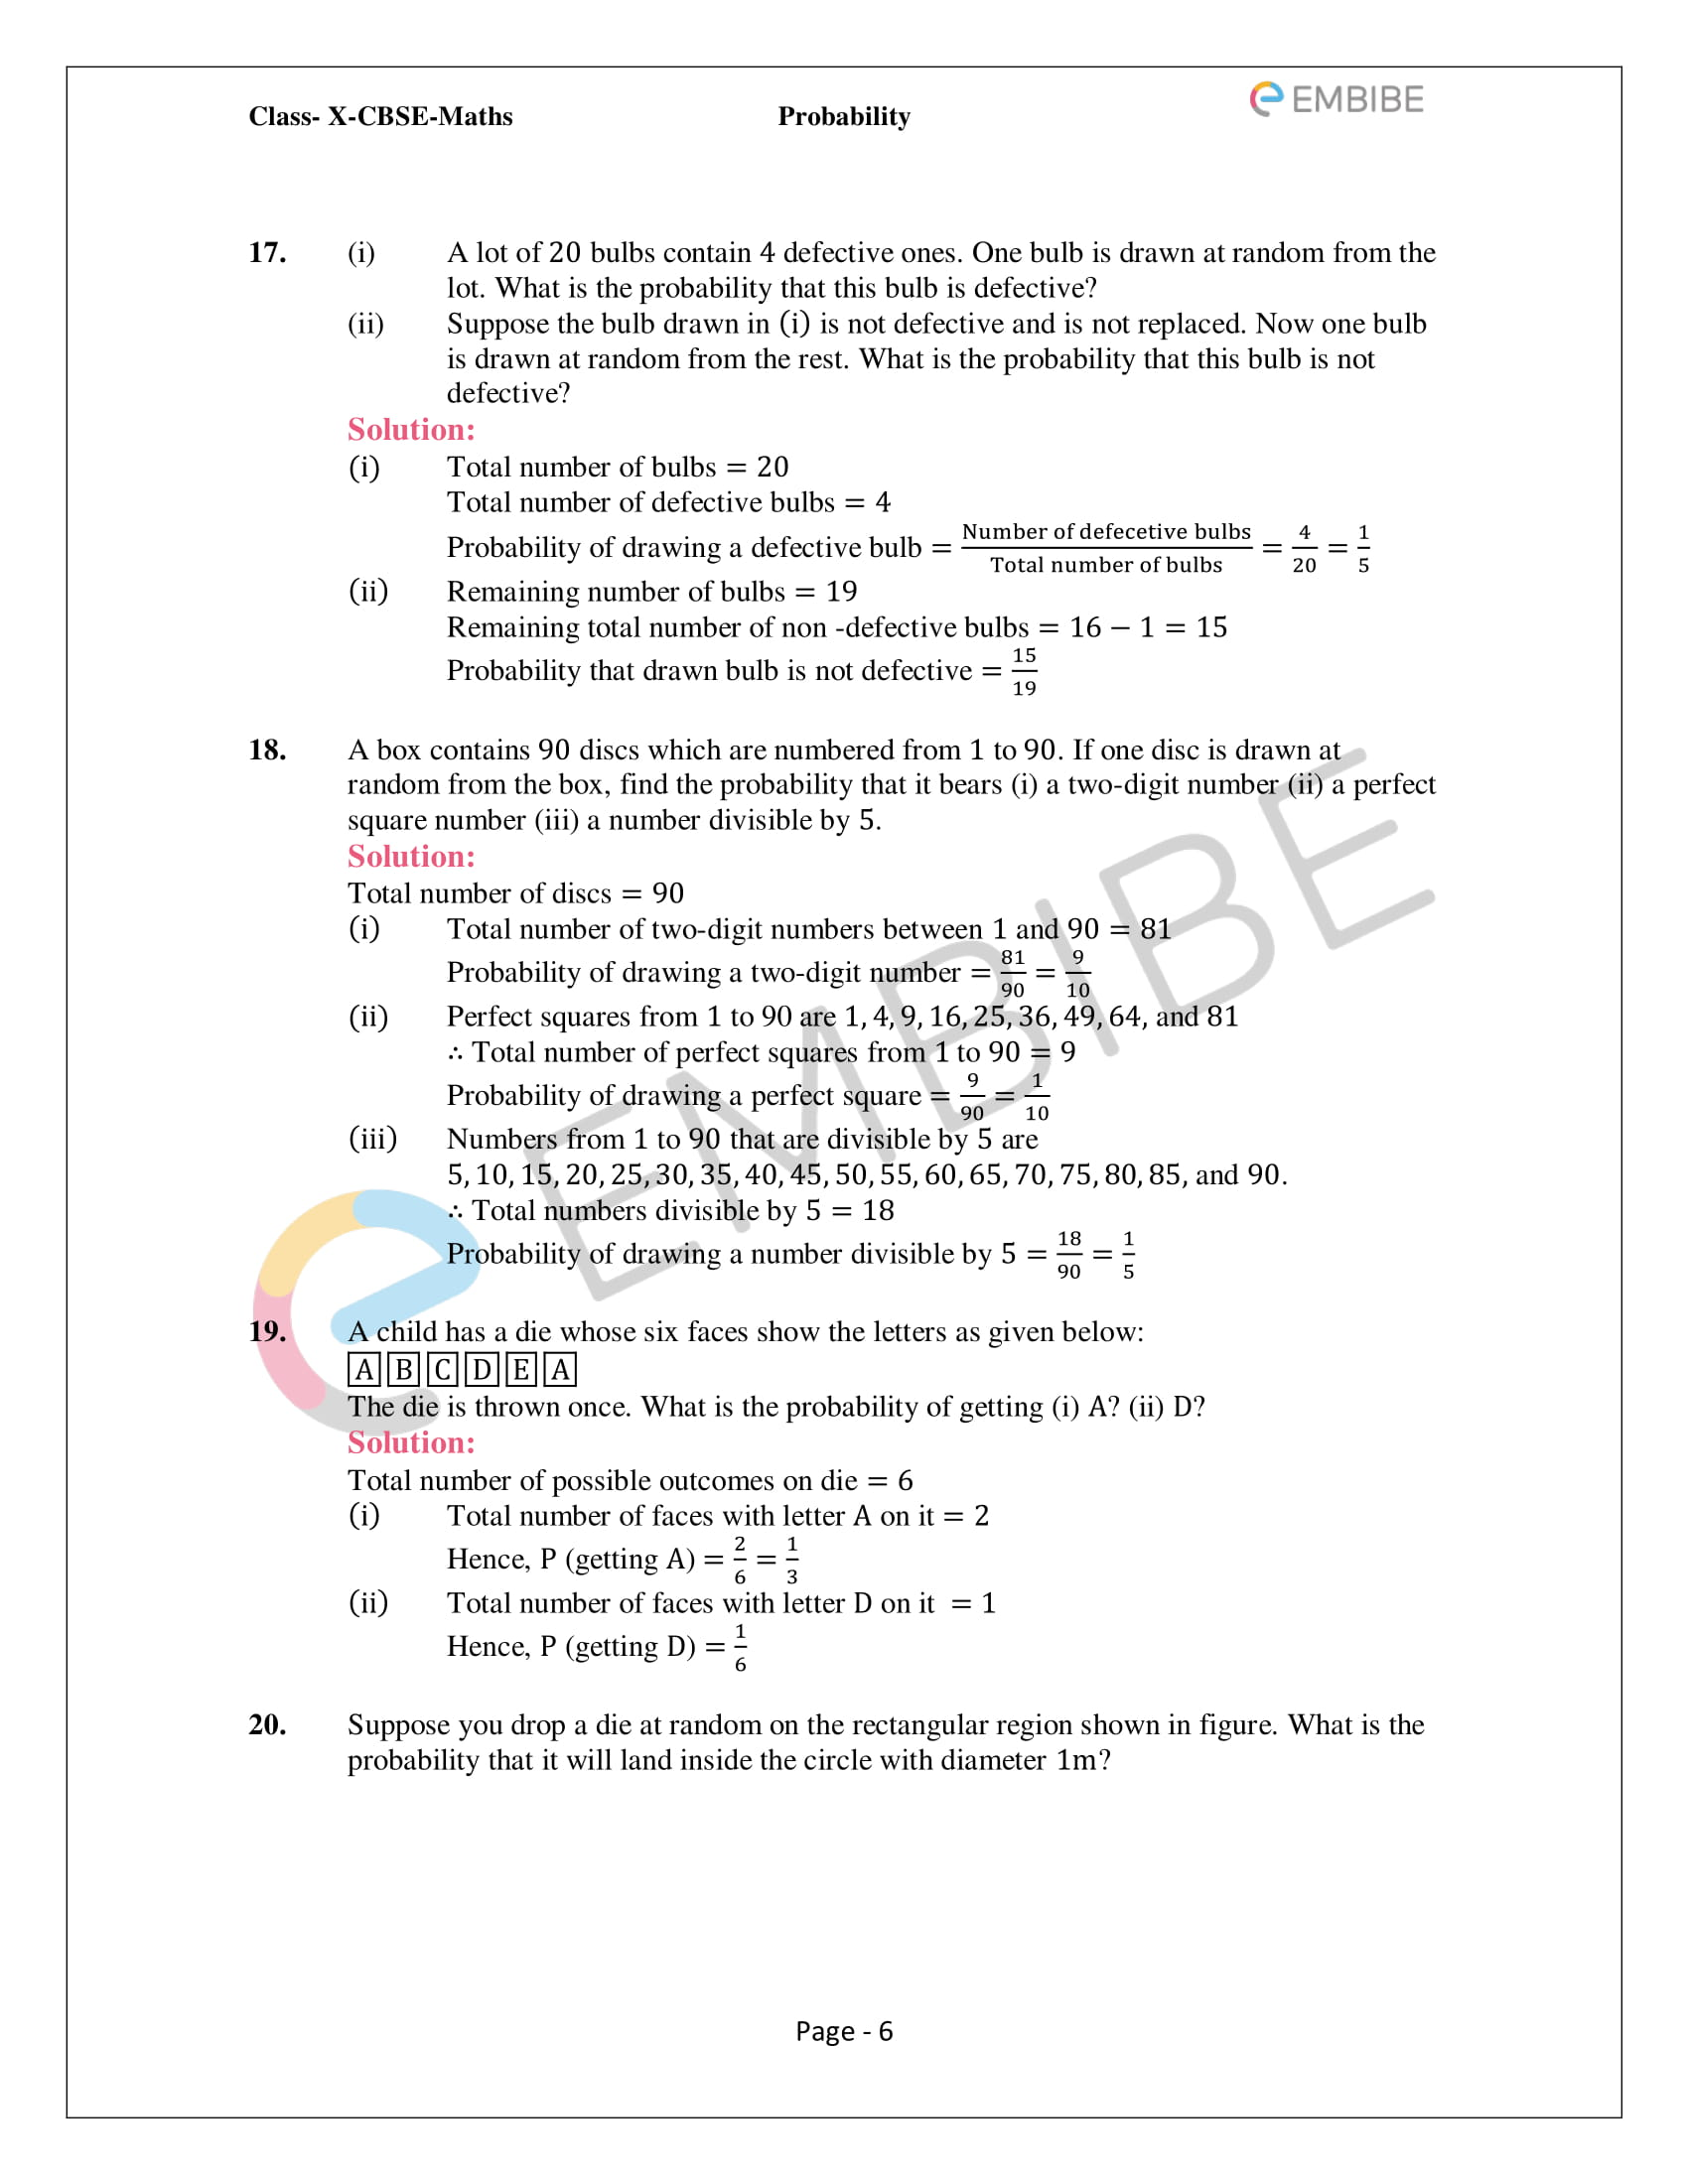 CBSE NCERT Solutions For Class 10 Maths Chapter 15 - Probability - 6